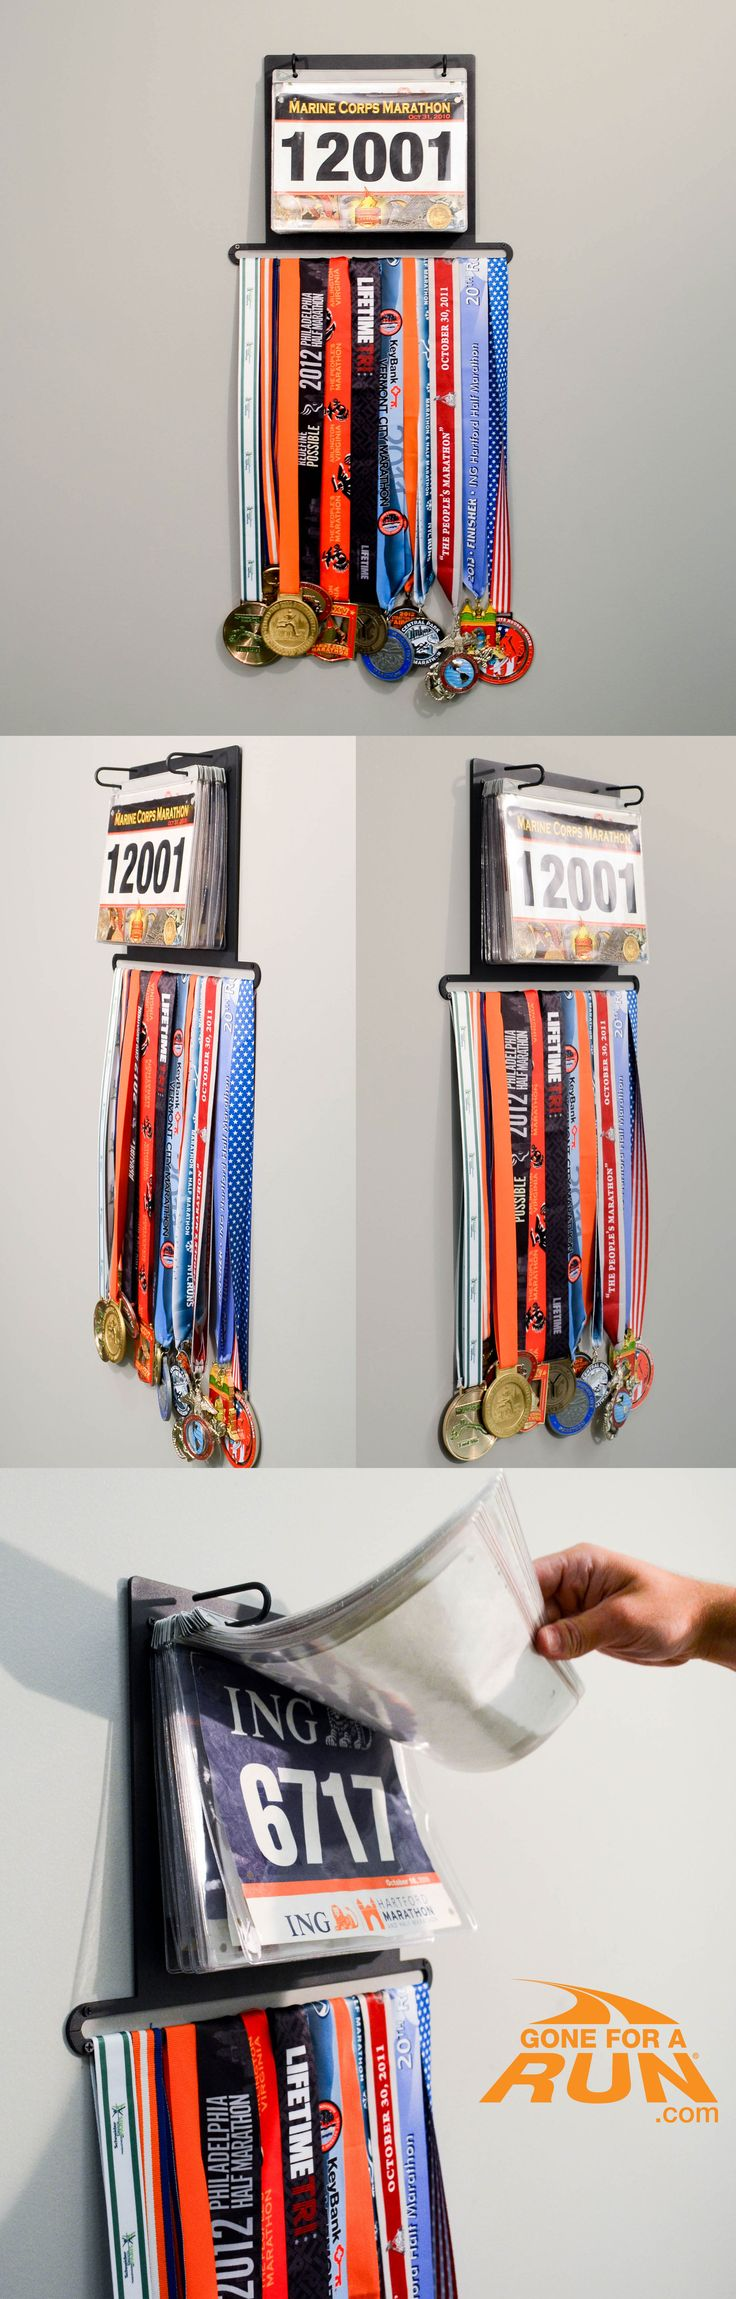 The one and only BibFolio Plus Race Bib and Medal display, only from GoneForaRUN! The best and most original design to proudly display both your race bibs and your hard earned medals al in one display. Also available is an option to add a beautiful cover that you can personalize! #running